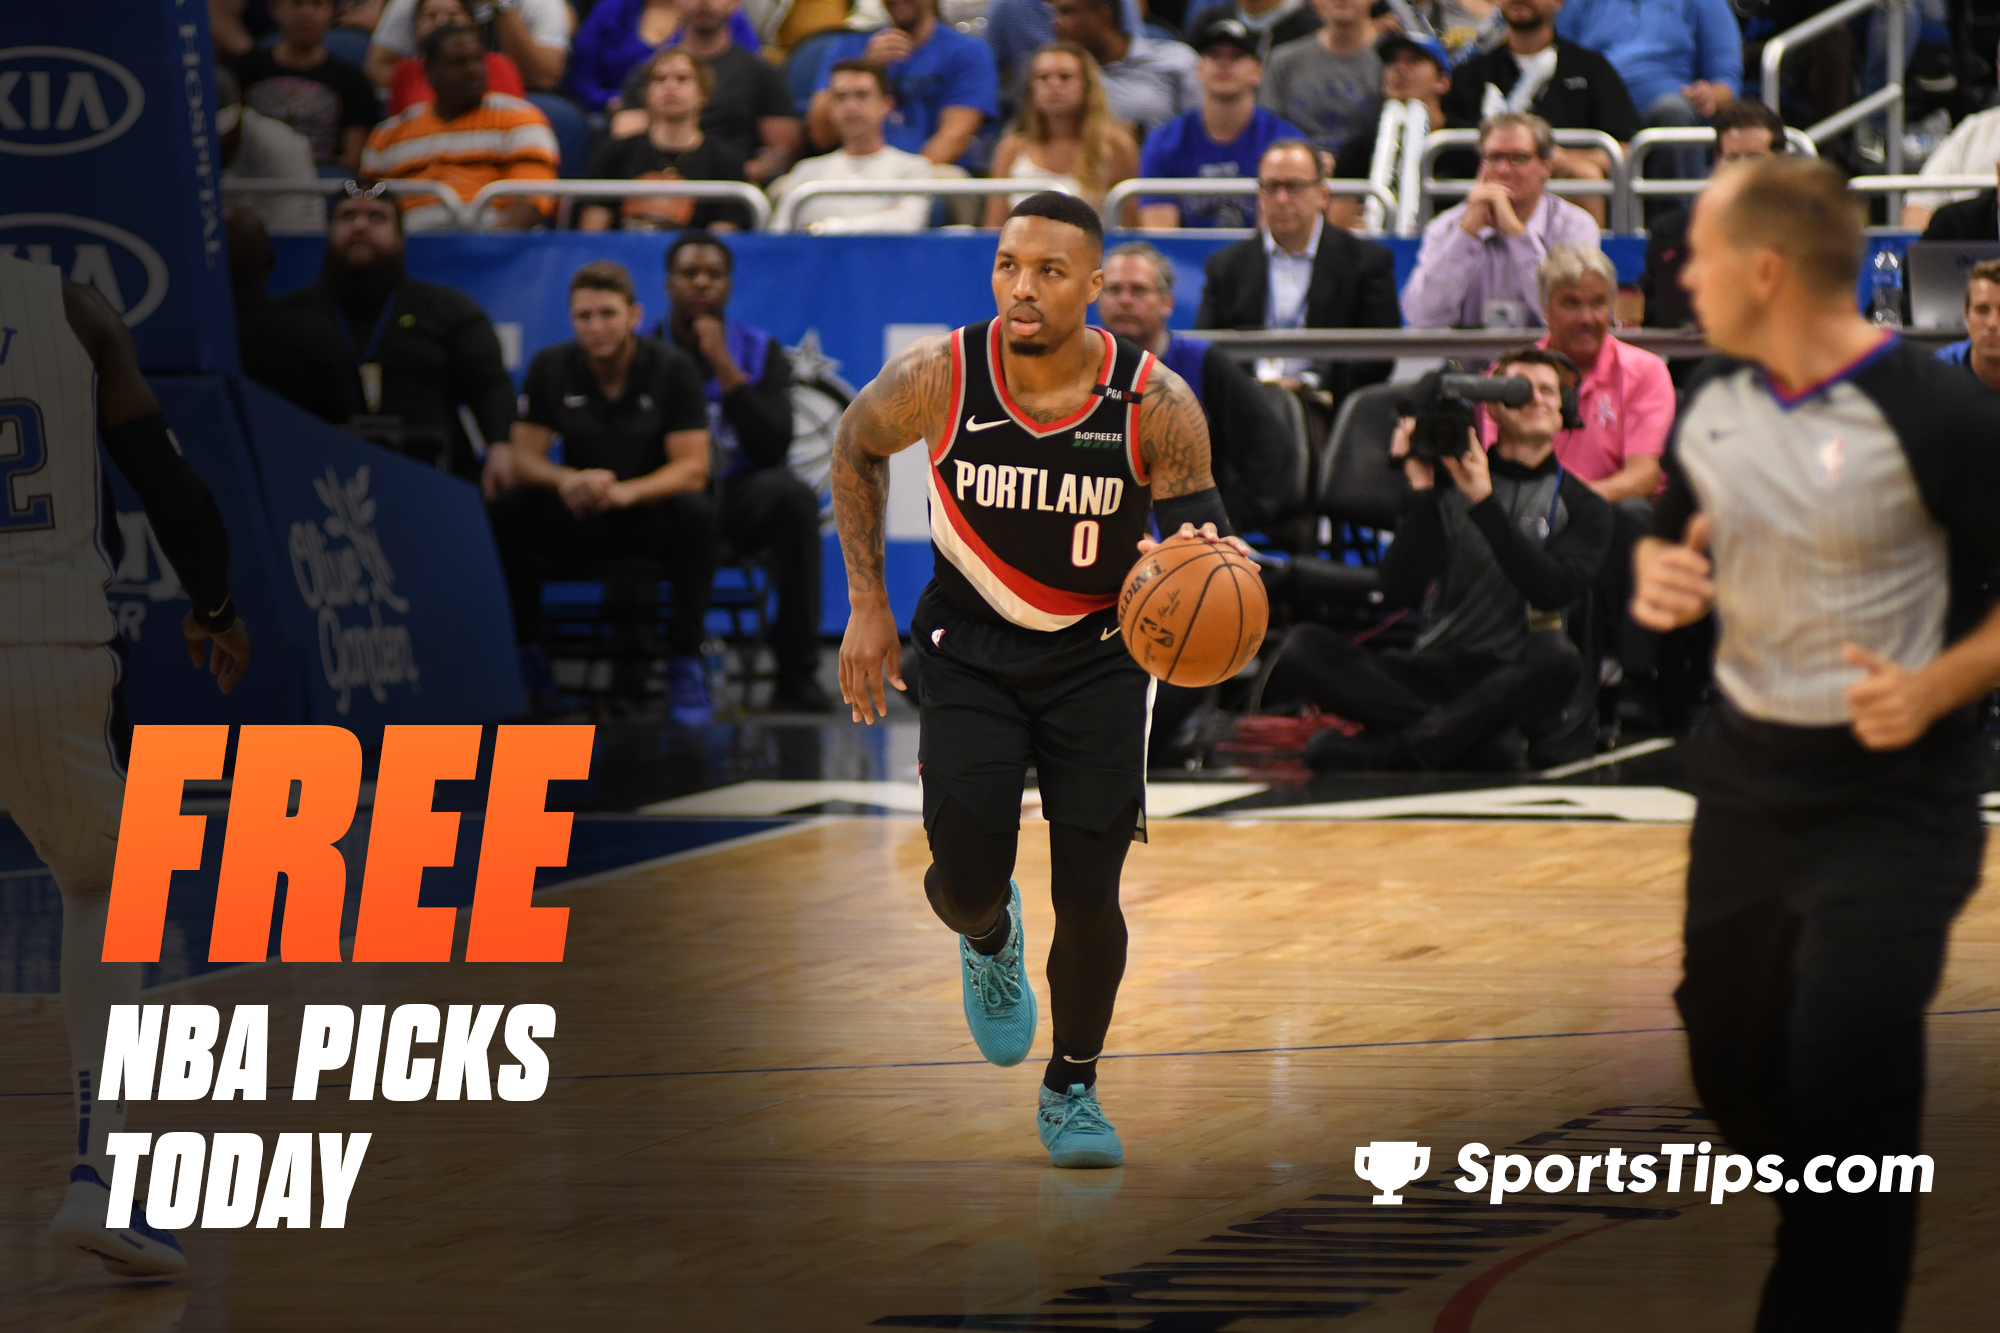 Free NBA Picks Today for Thursday, February 11th, 2021